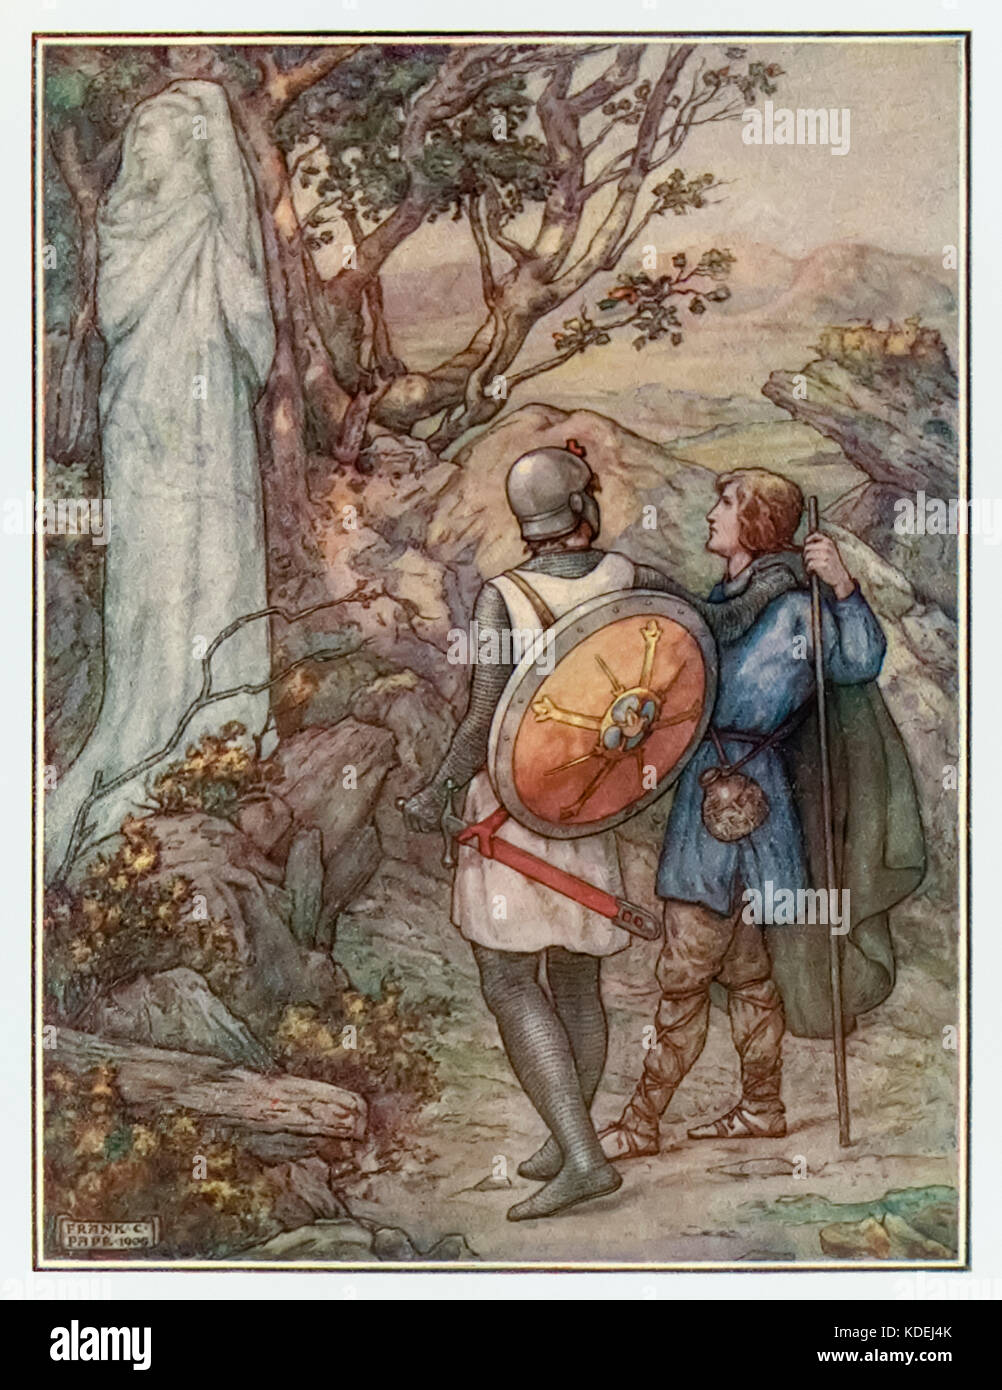 """Remember Lot's wife"" from 'The Pilgrim's Progress' by John Bunyan (1628-1688). Illustration by Frank C. Papé - Stock Image"